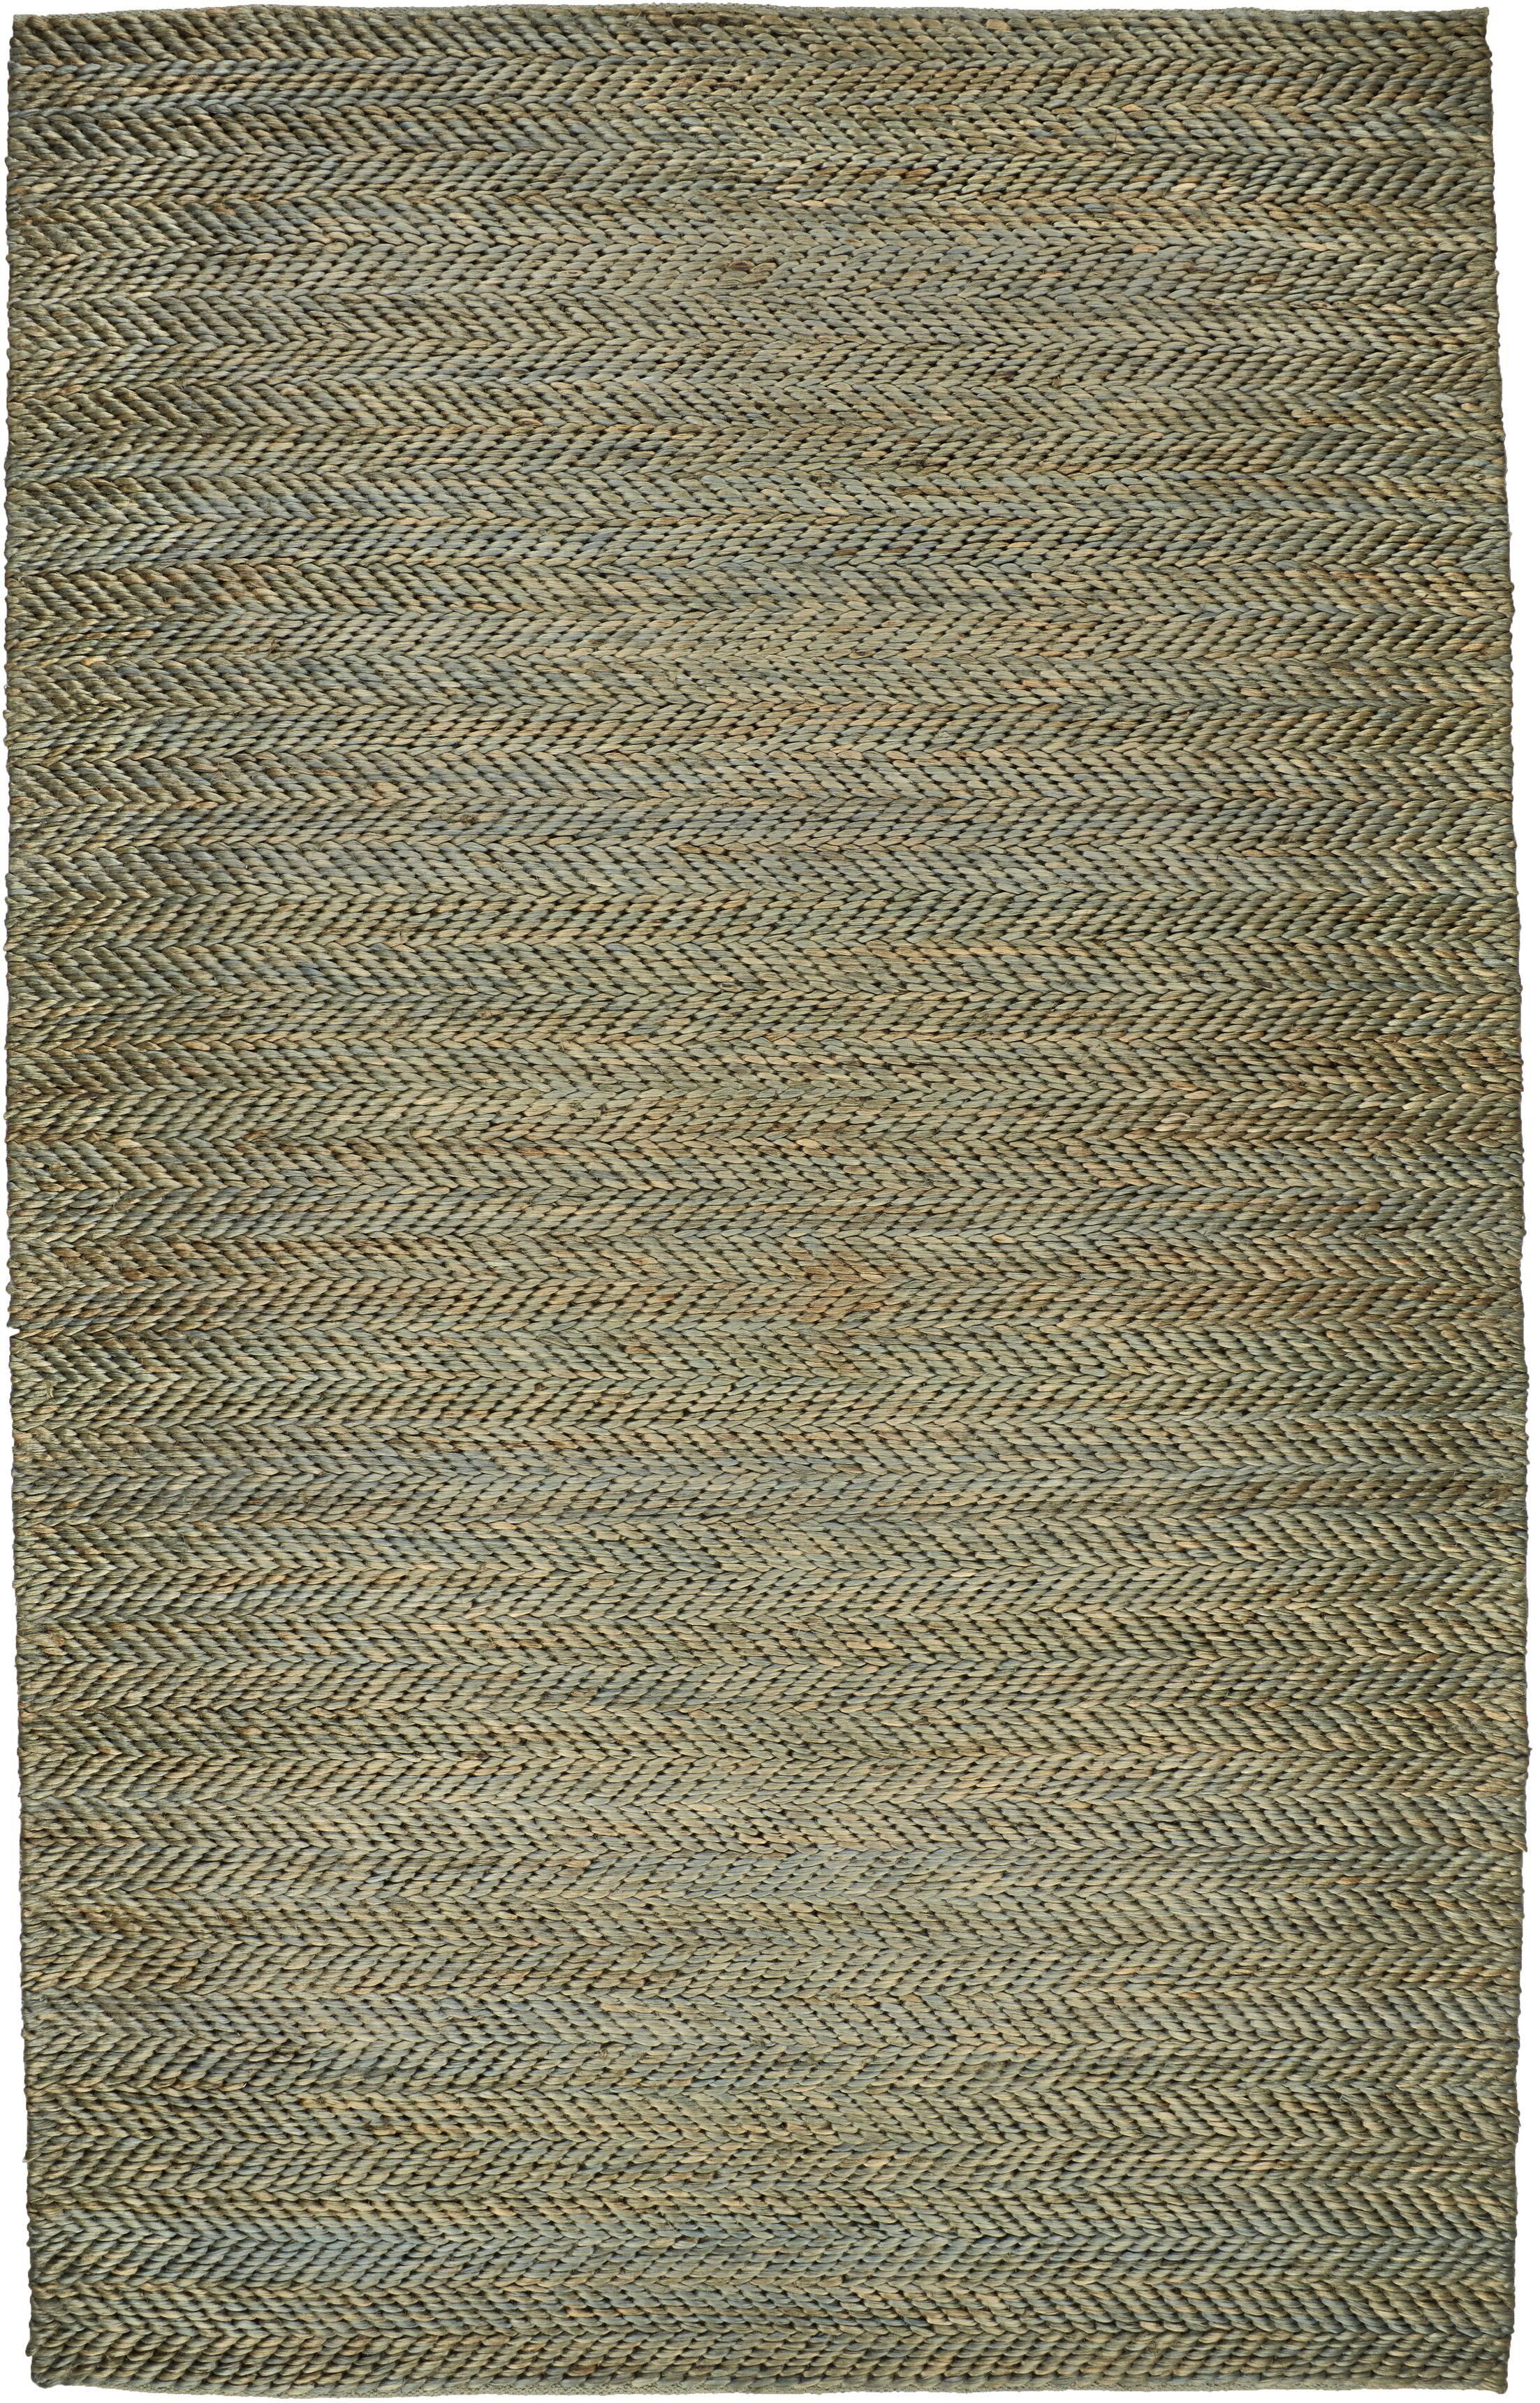 Riaria Hand-Woven Teal Area Rug Rug Size: Rectangle 8' x 11'